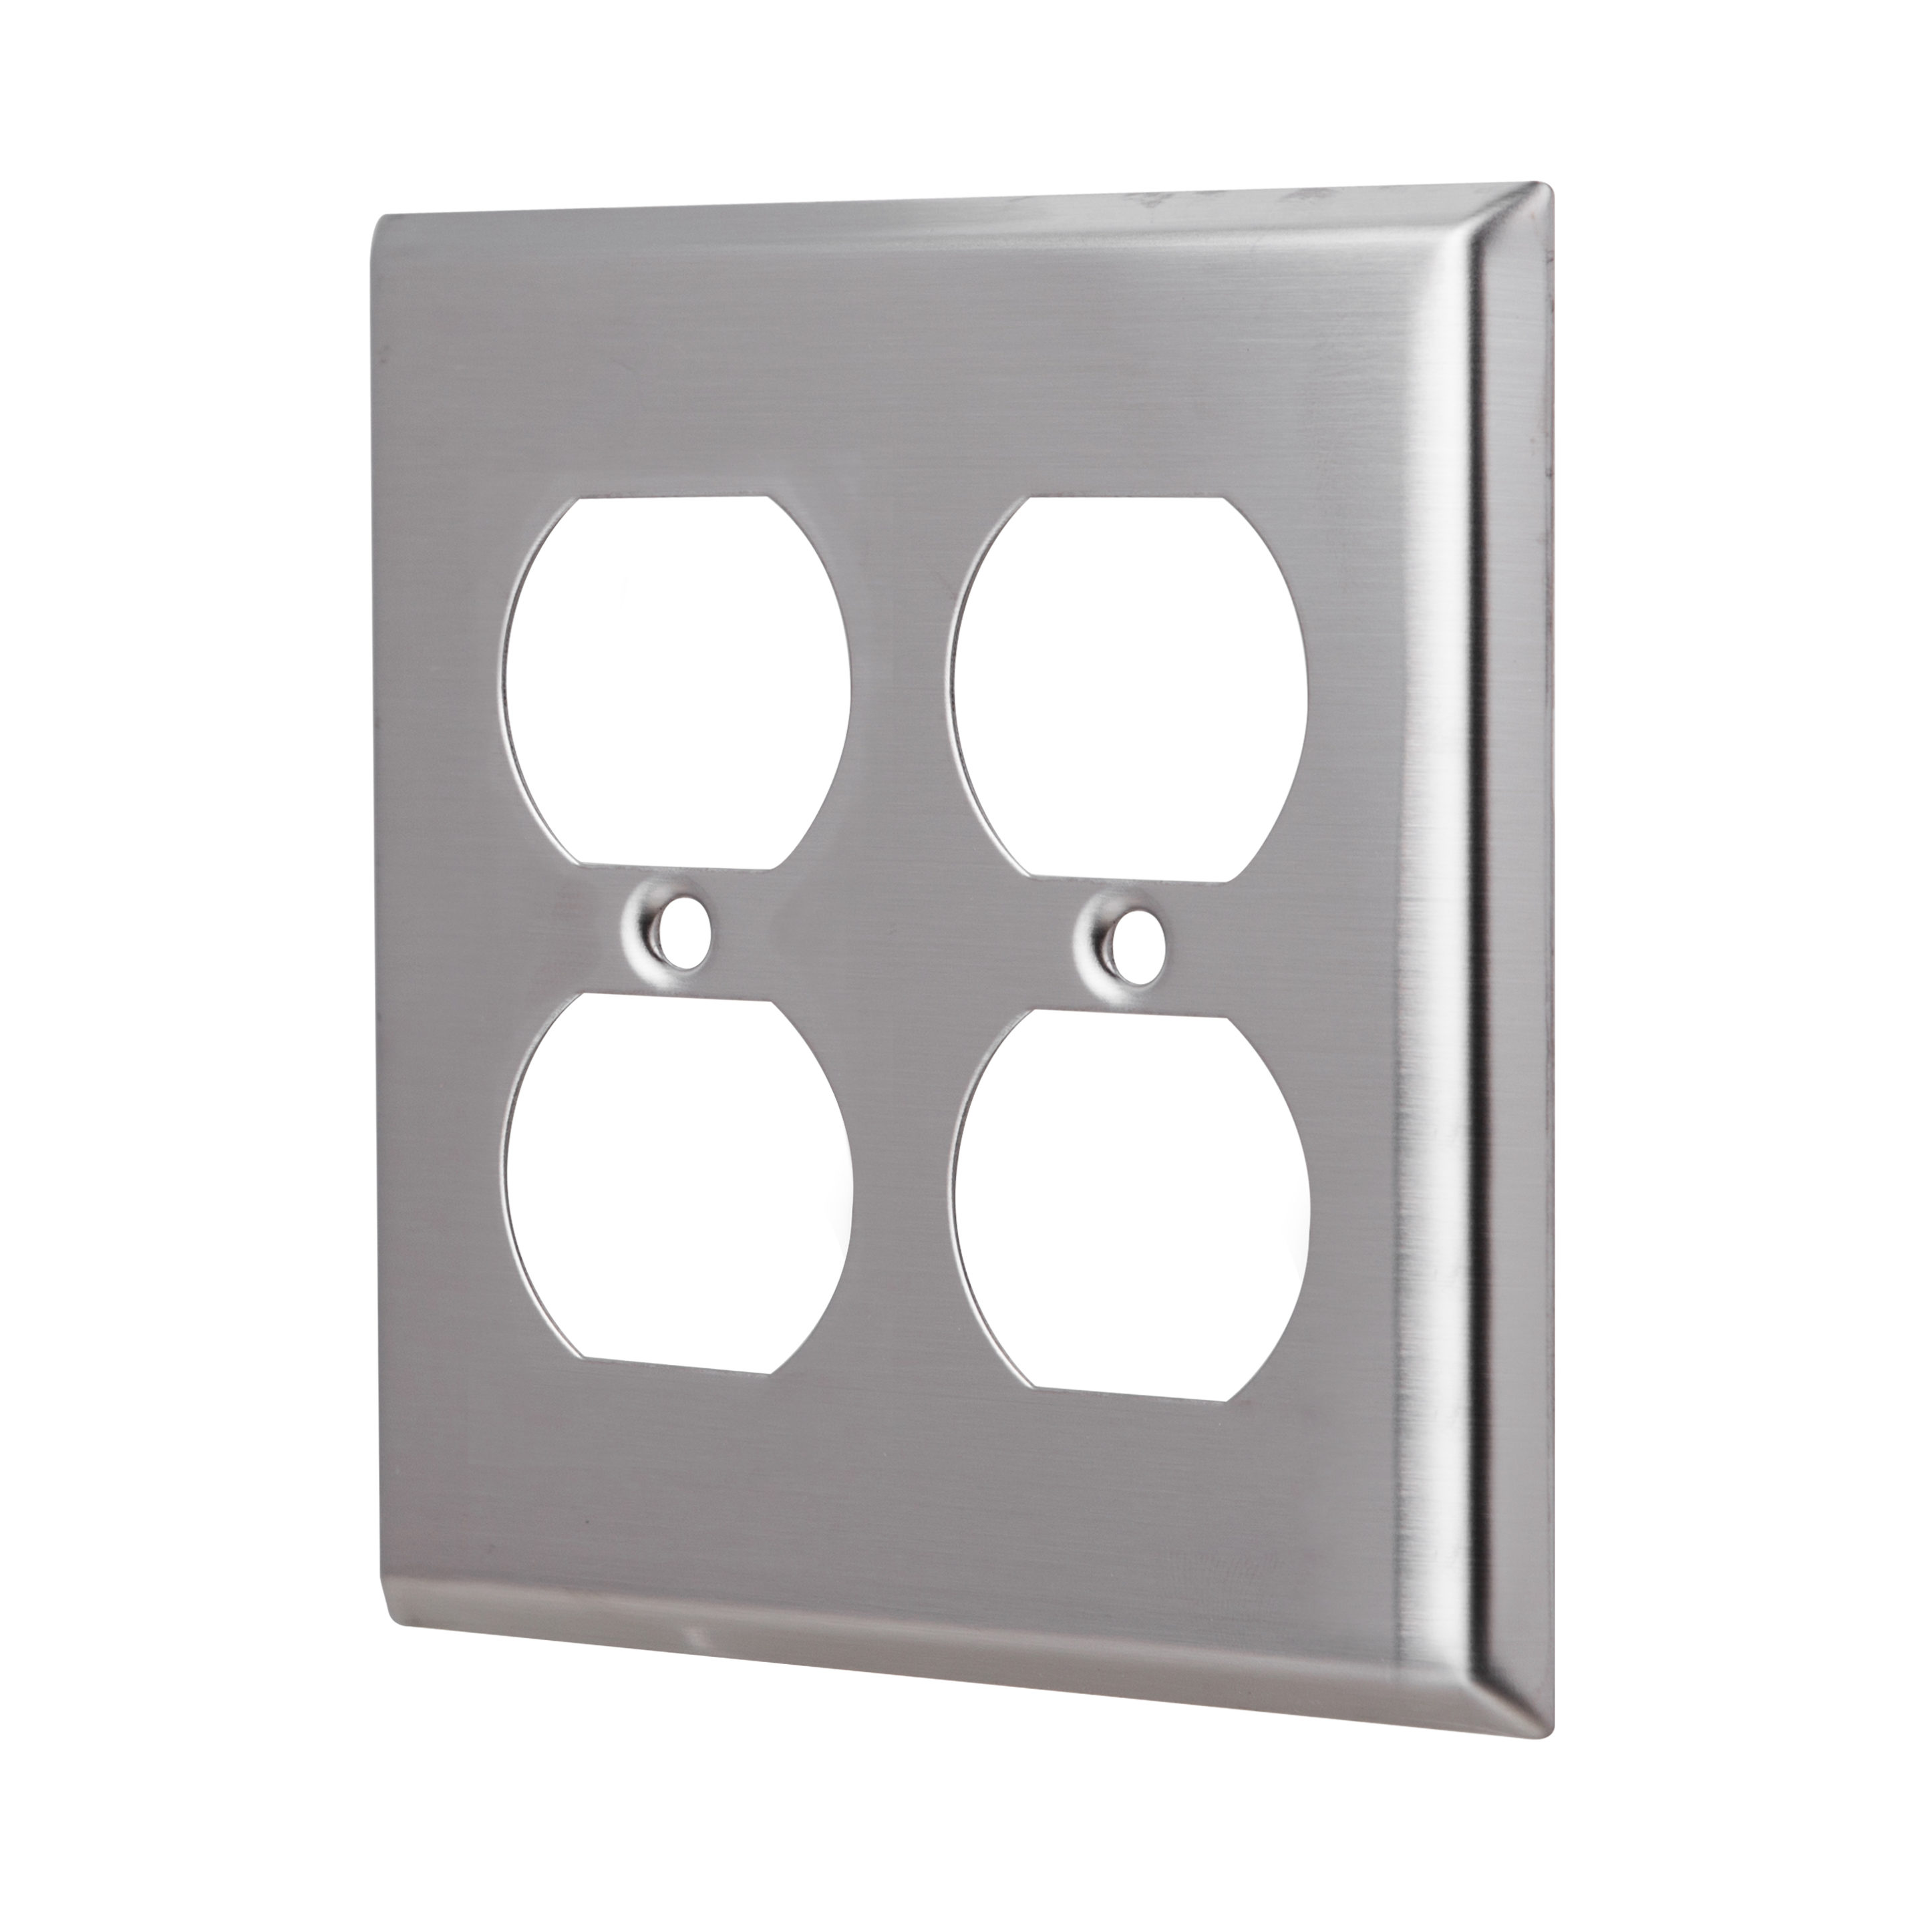 2 Gang Stainless Steel Duplex Receptacle Wall Plate